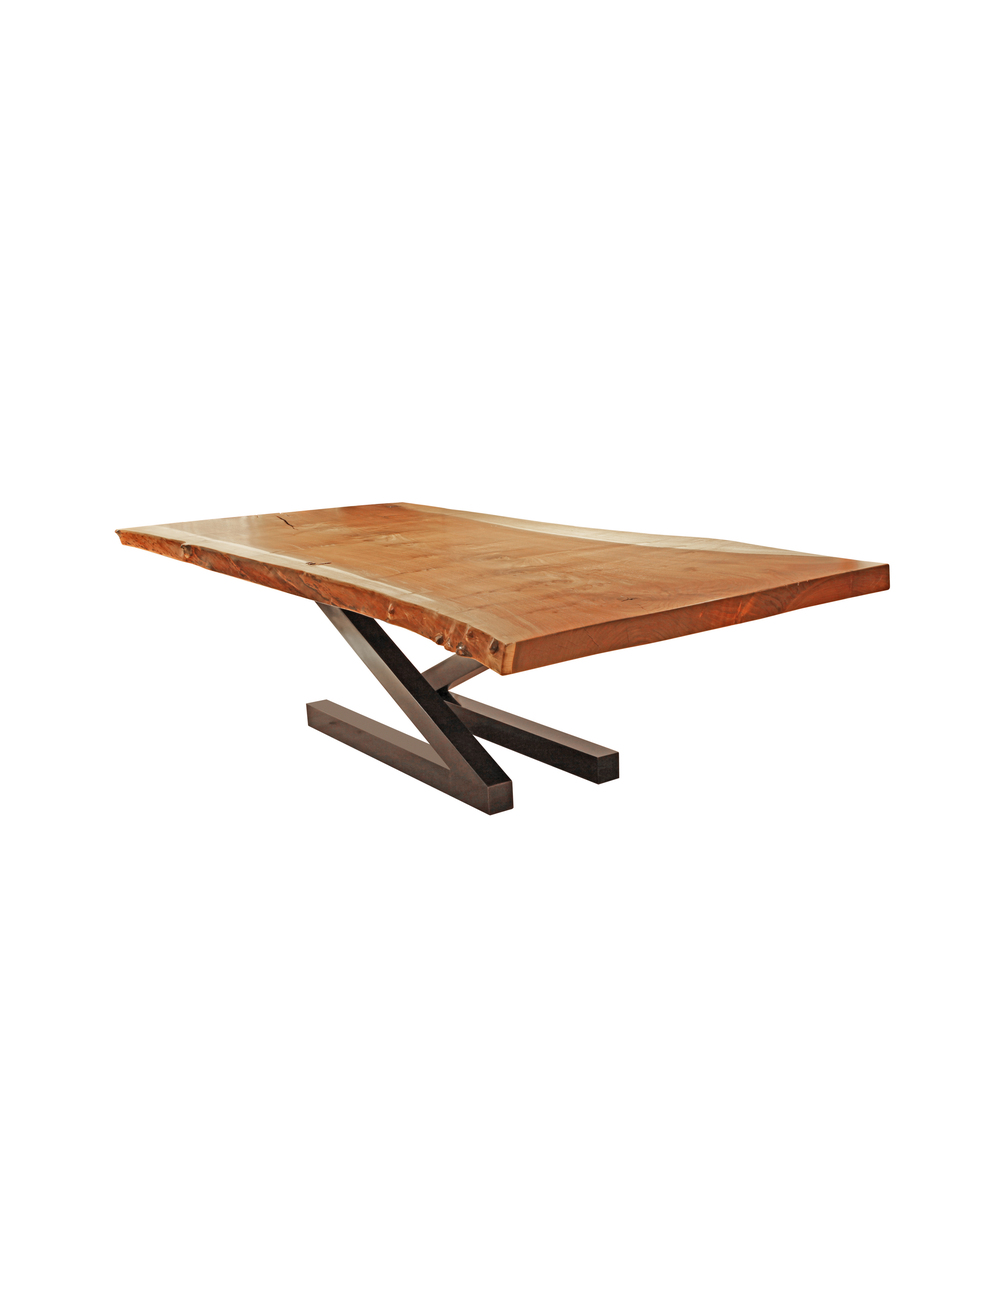 Walnut Zeta Table.jpg